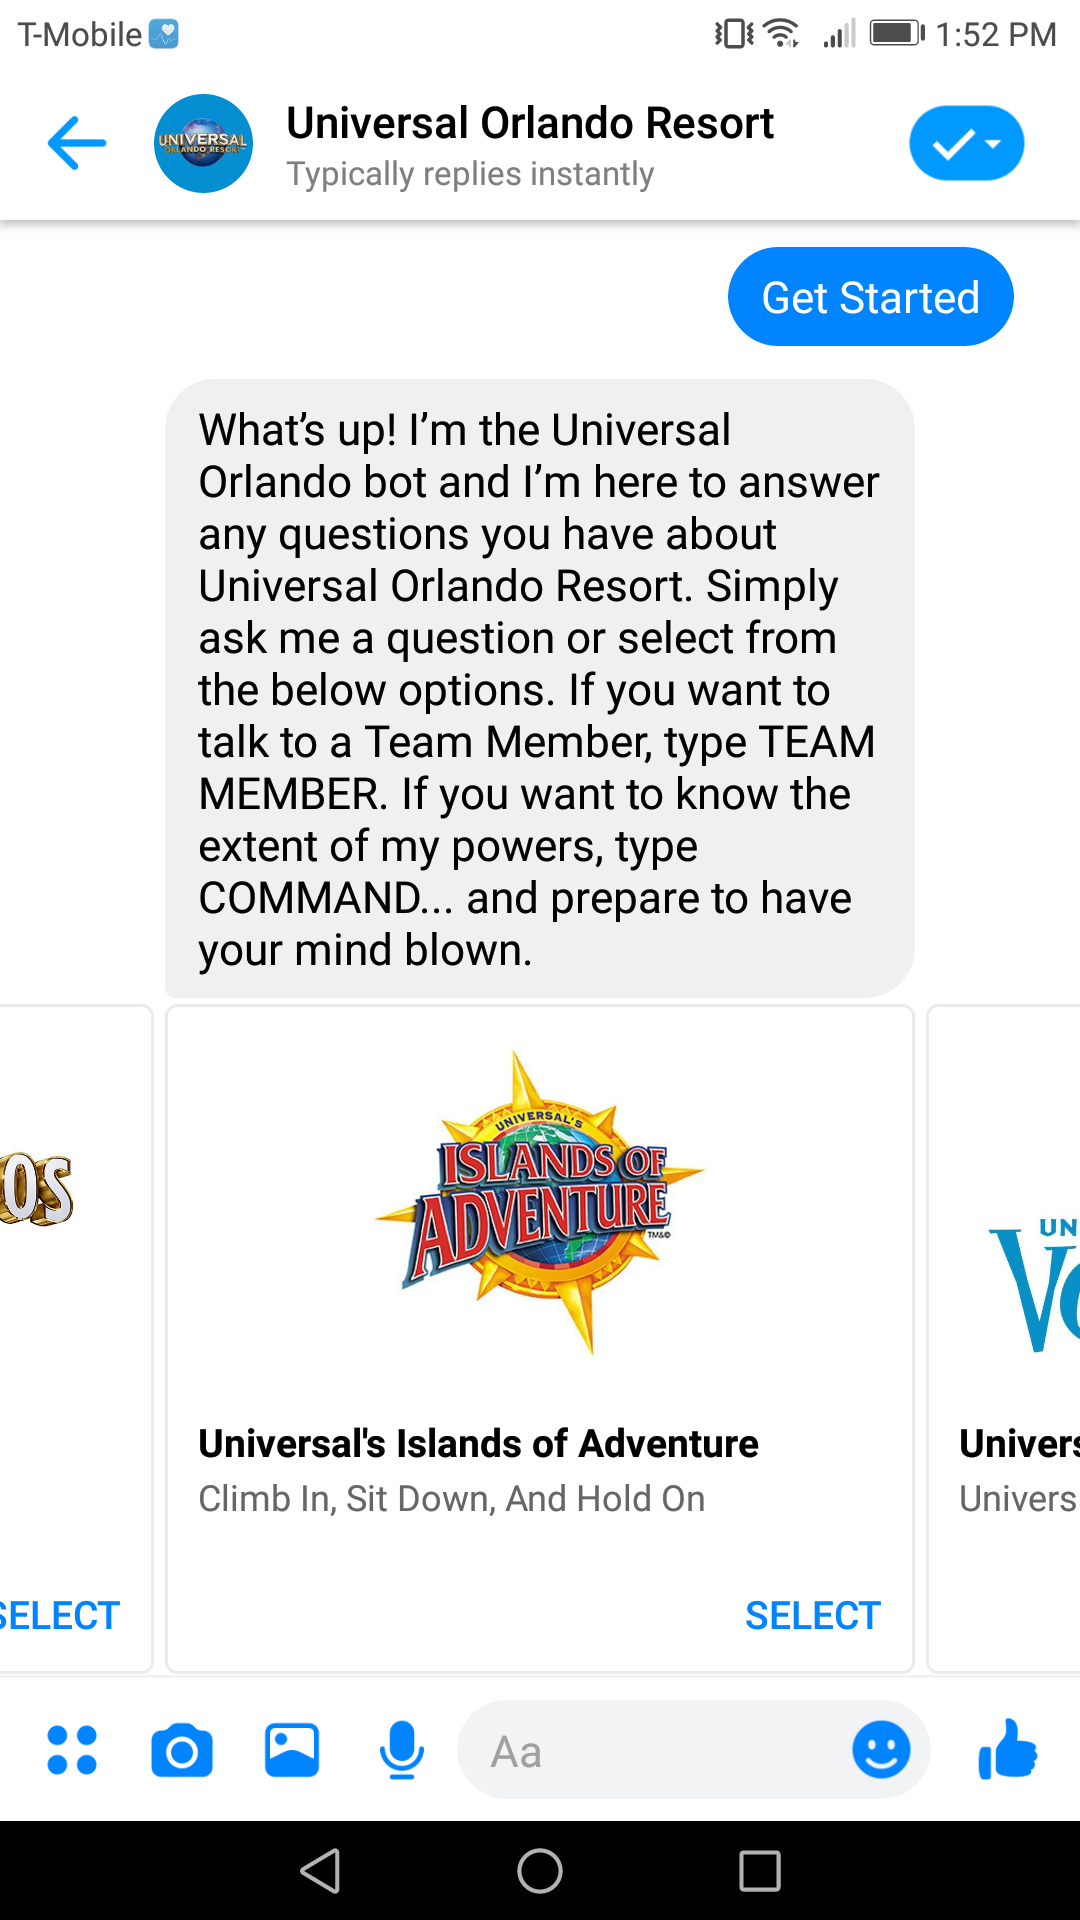 Universal Orlando's bot has some personality